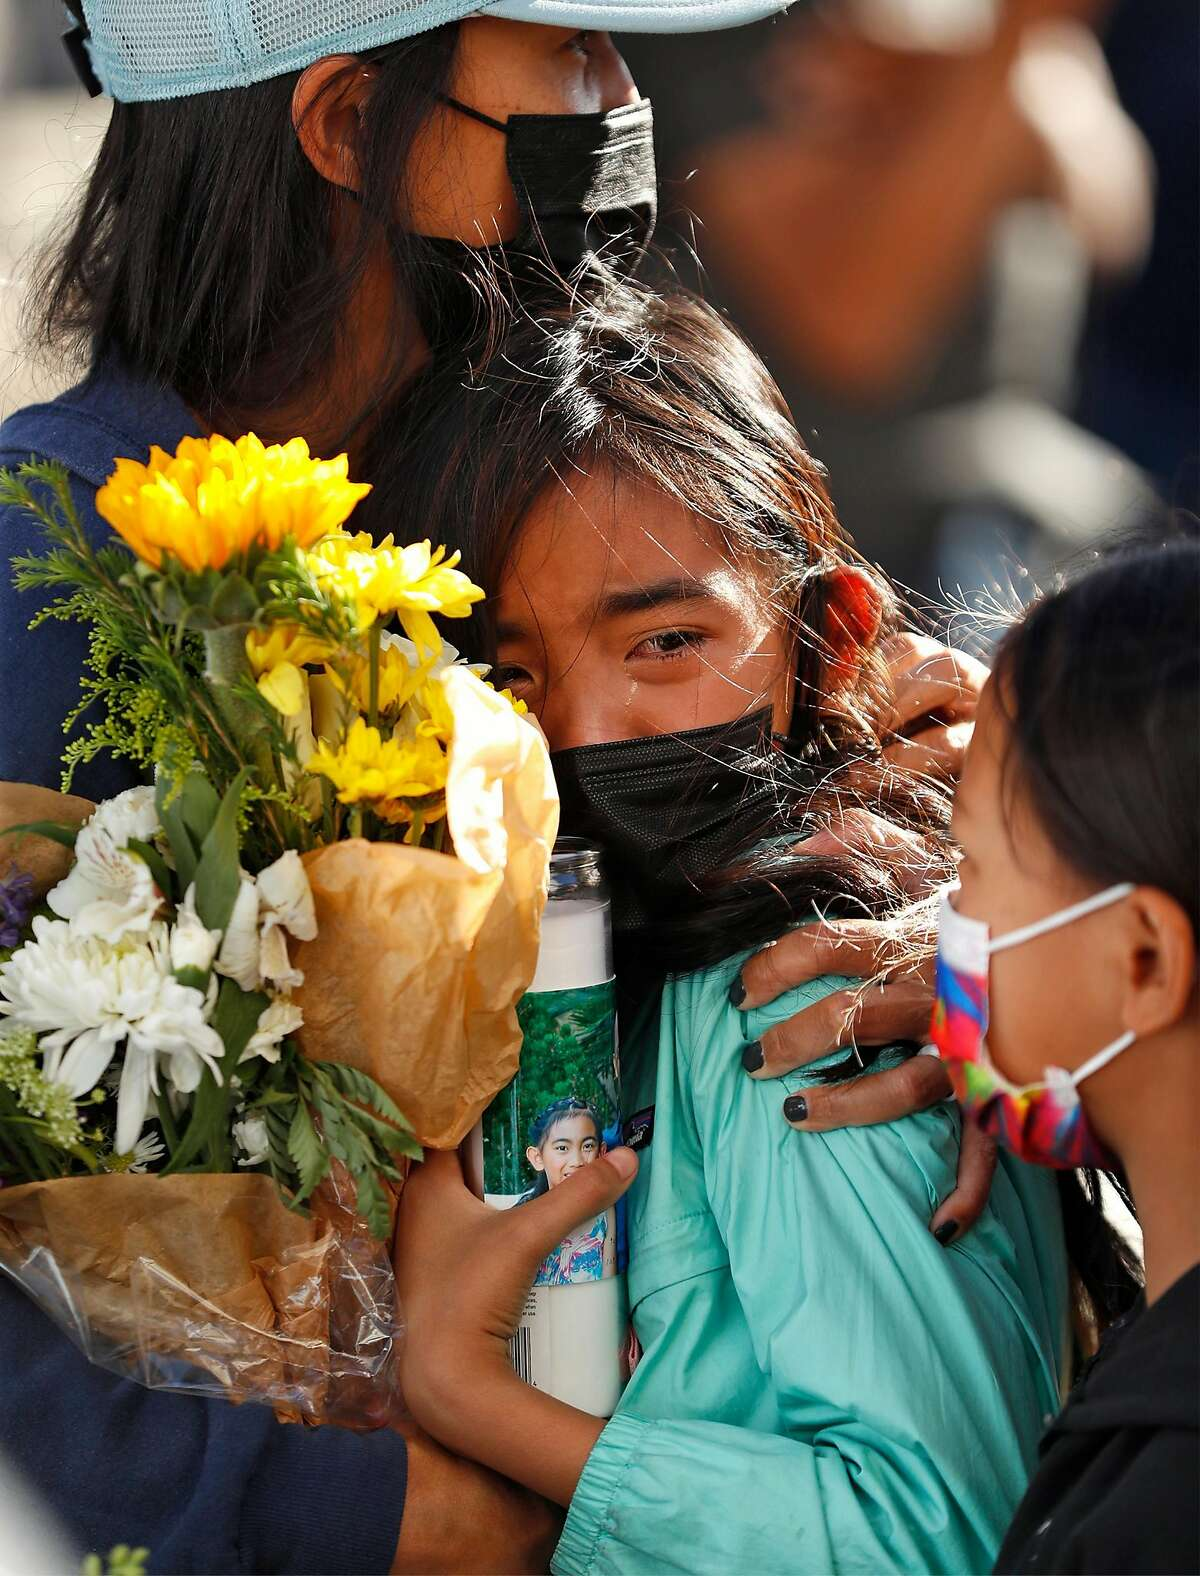 Avery Megia, the daughter of victim Paul Megia sheds a tear as she is comforted during a public vigil on Thursday, May 27, 2021, at San Jose City Hall in wake of Wednesday's mass shooting that claimed 9 lives at Valley Transportation Authority's maintenance yard in San Jose, Calif..